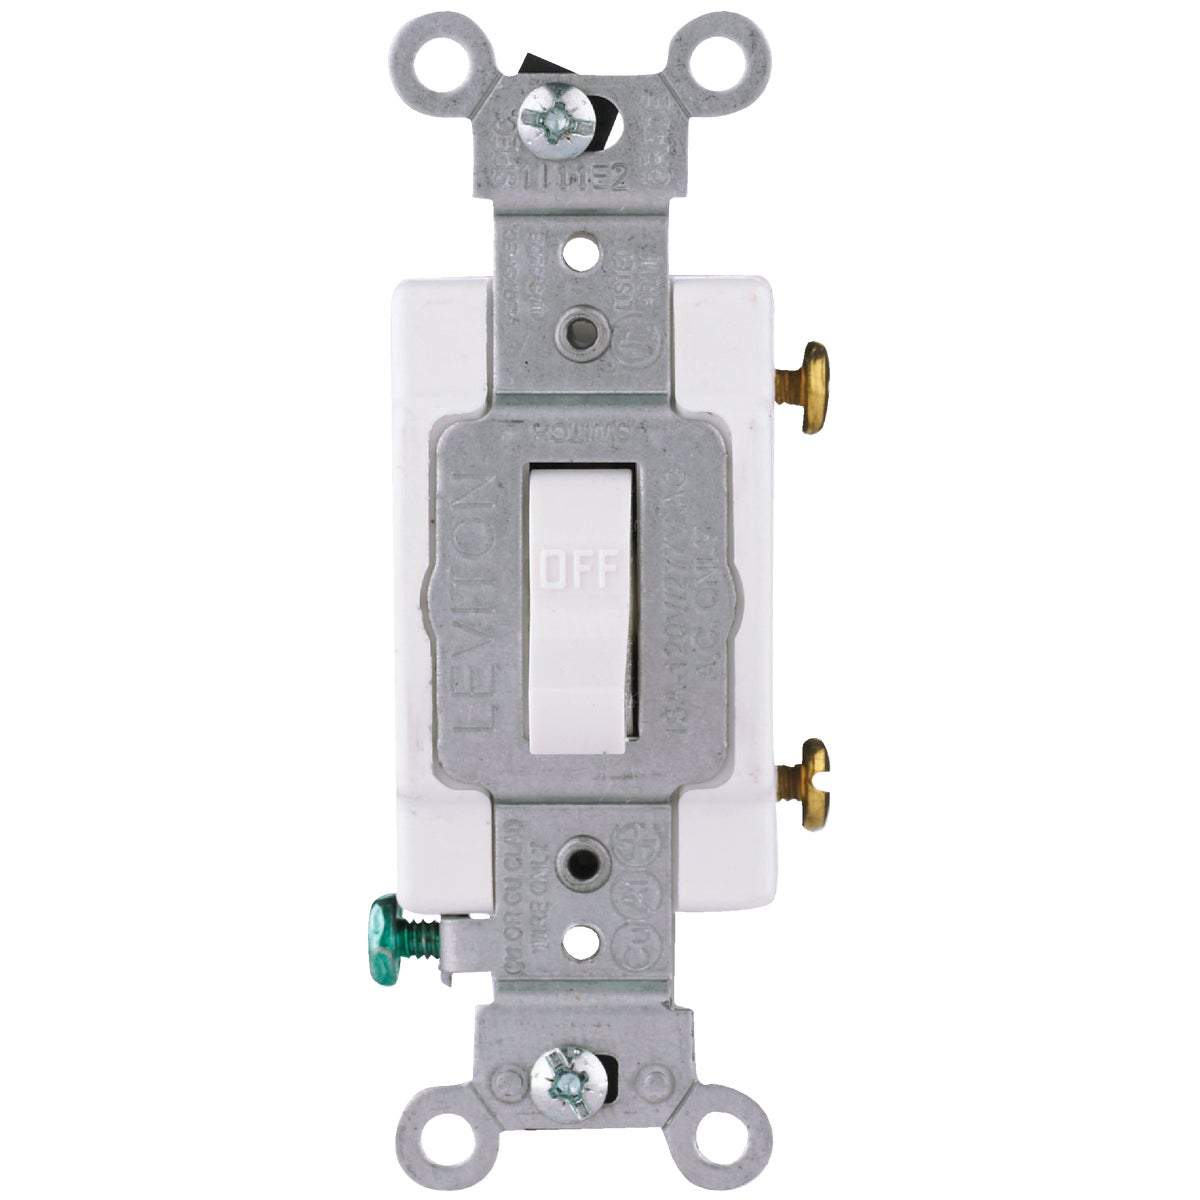 WHT 1-POLE GRND SWITCH